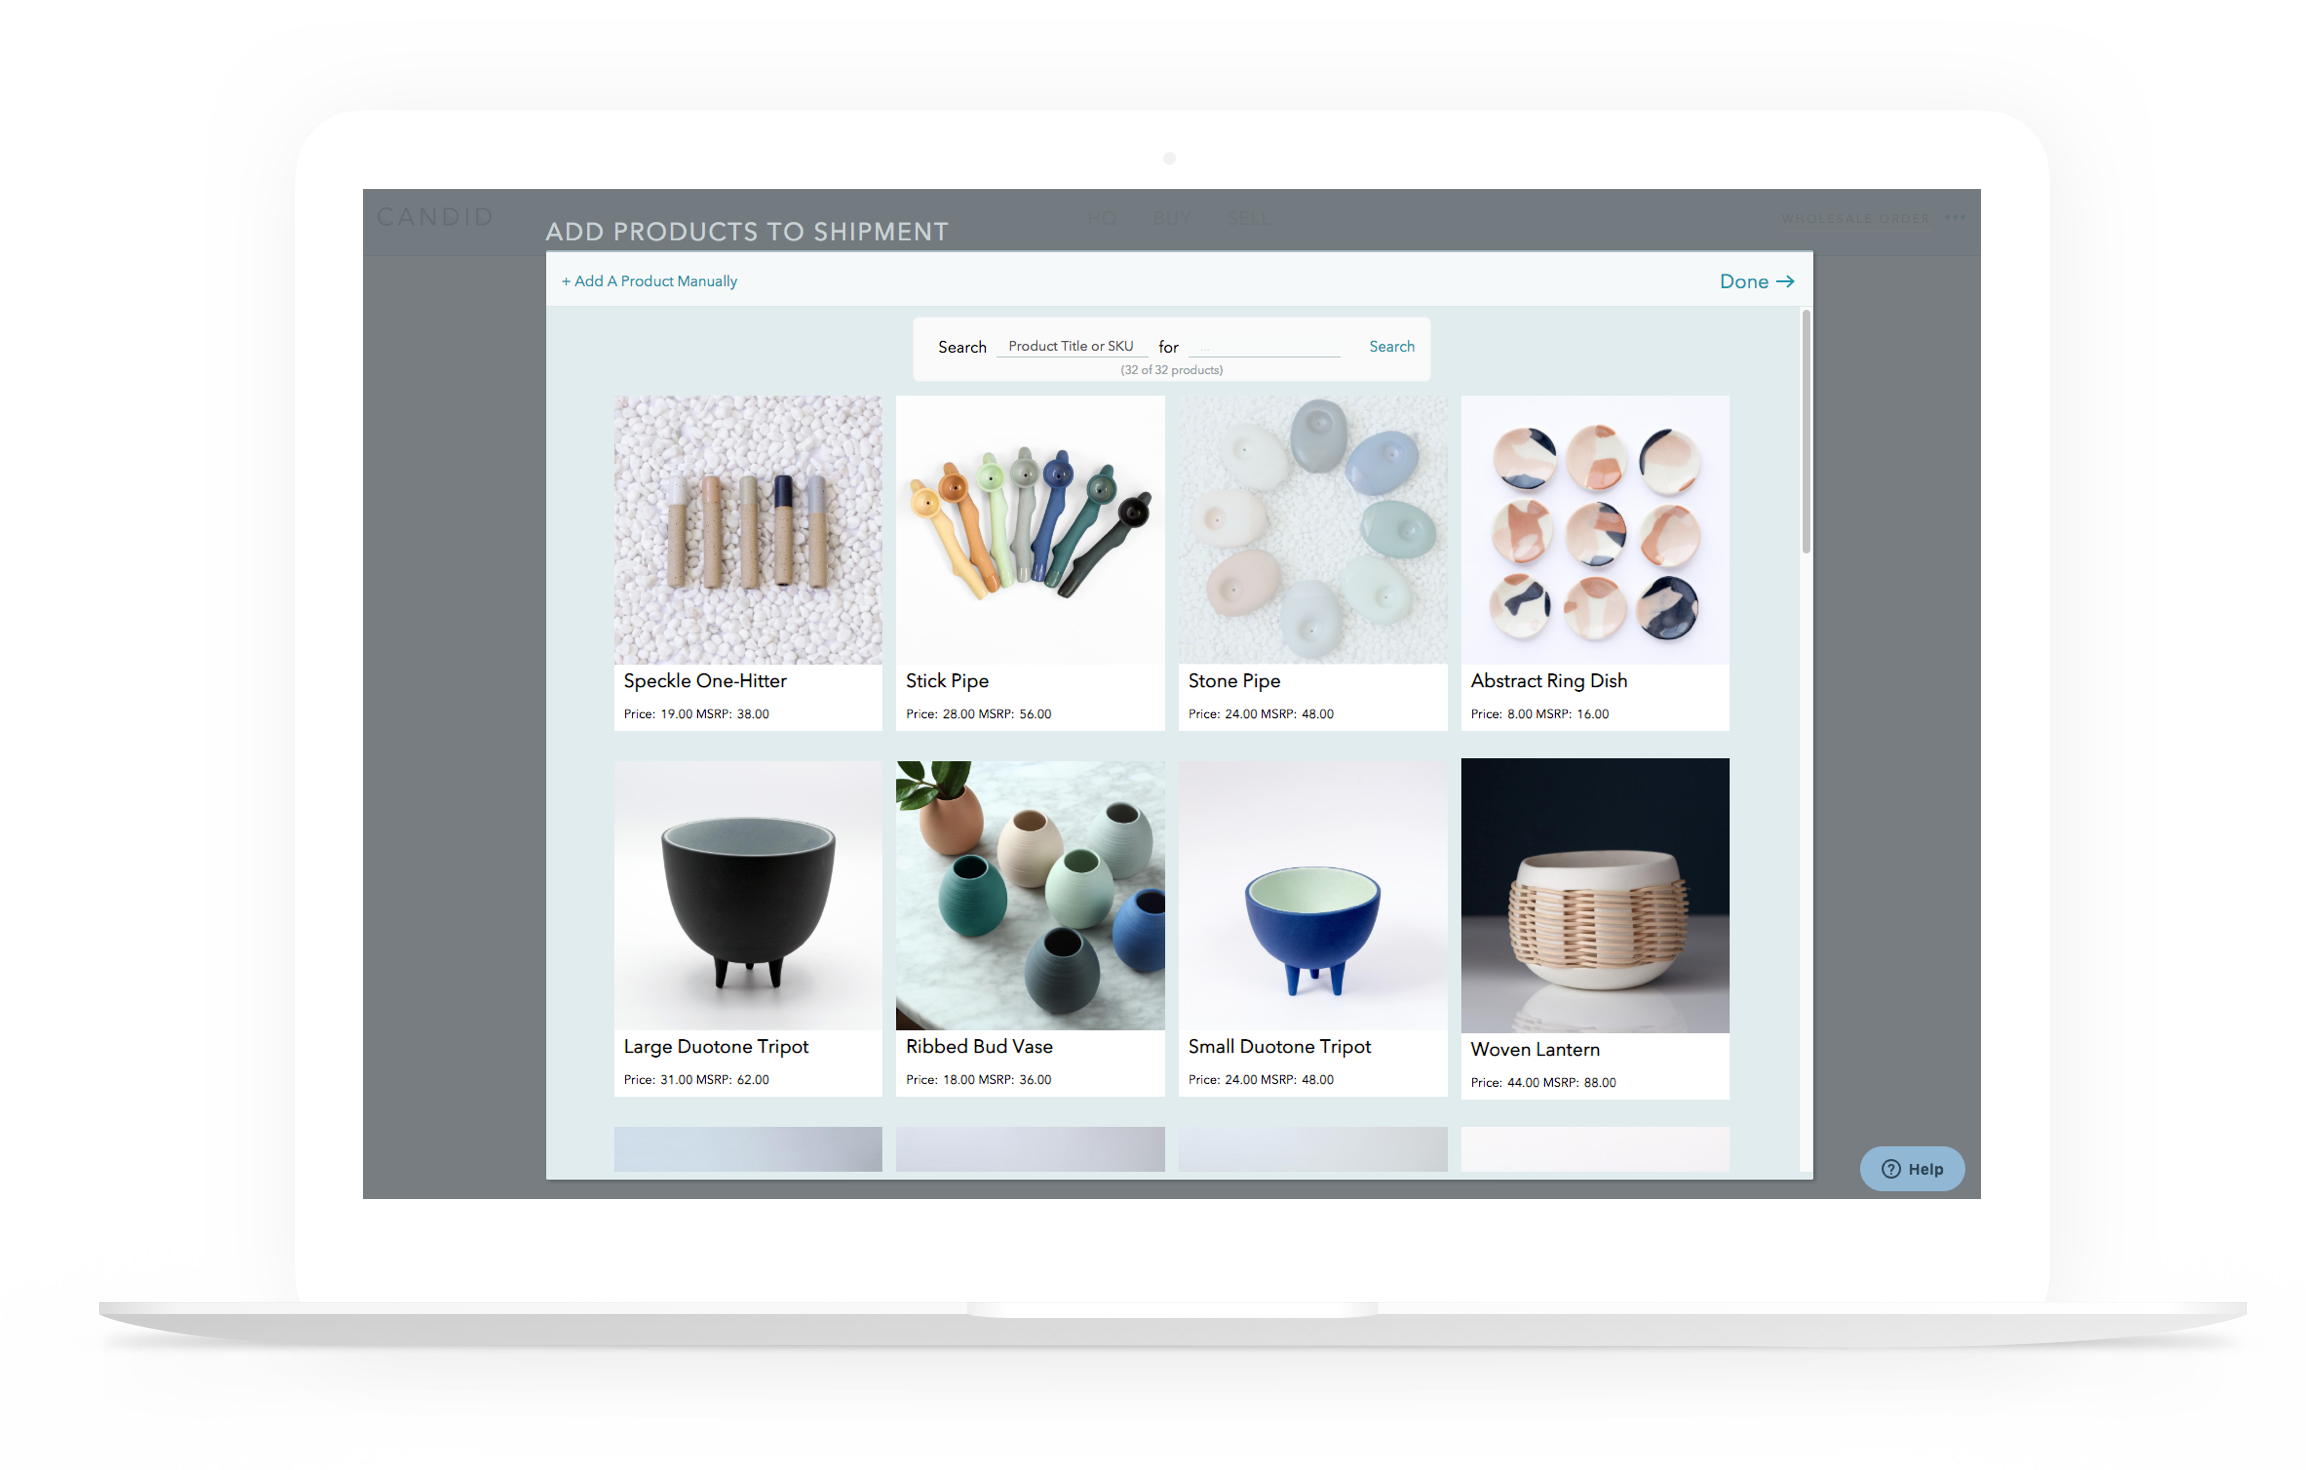 For Buyers - All your purchasing in one place. Products added directly to your store. Collaborate with brands in real time. (Or don't.)